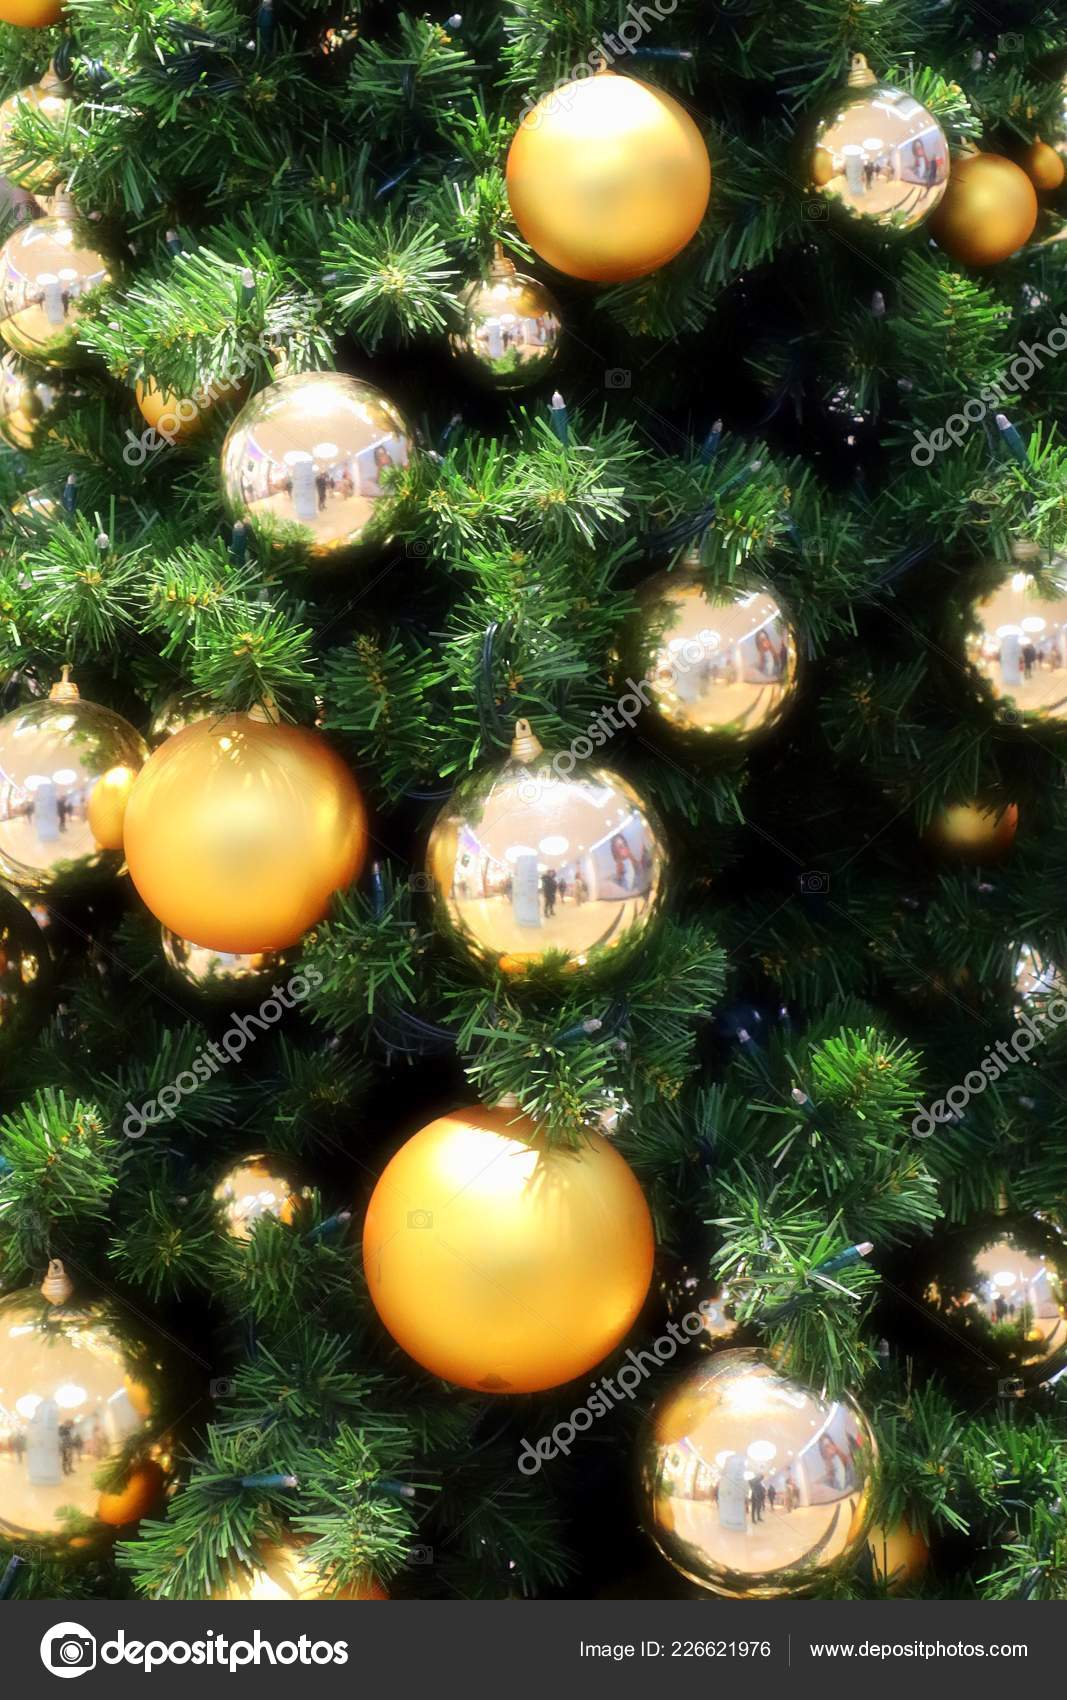 Christmas Tree Decoration Gold Silver Tones Green Tree Stock Photo Image By C Mp Foto71 226621976